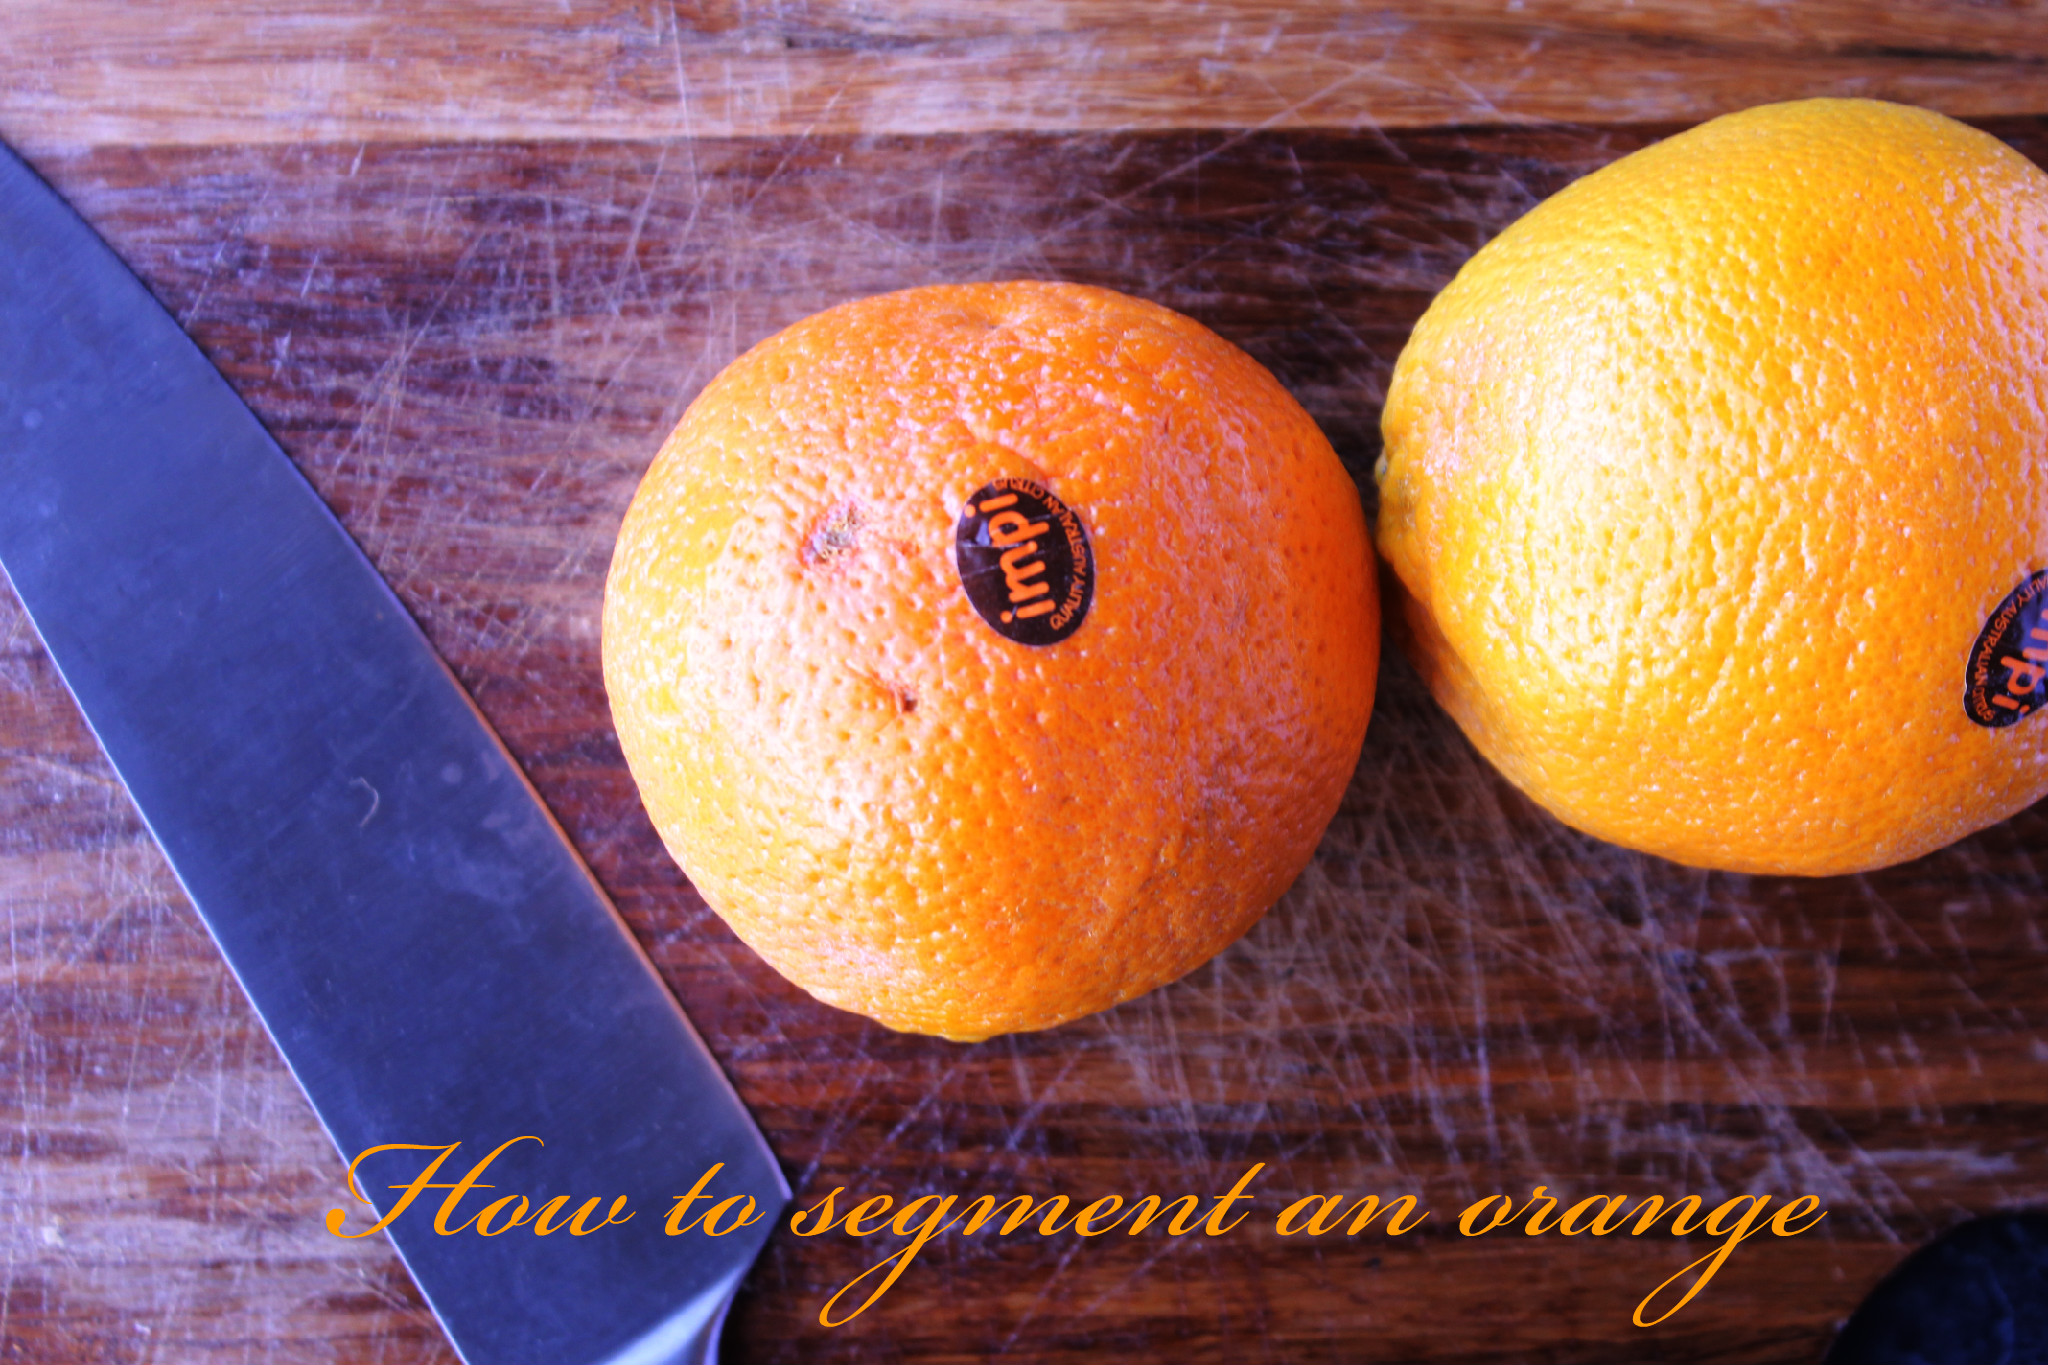 How to segment an orange